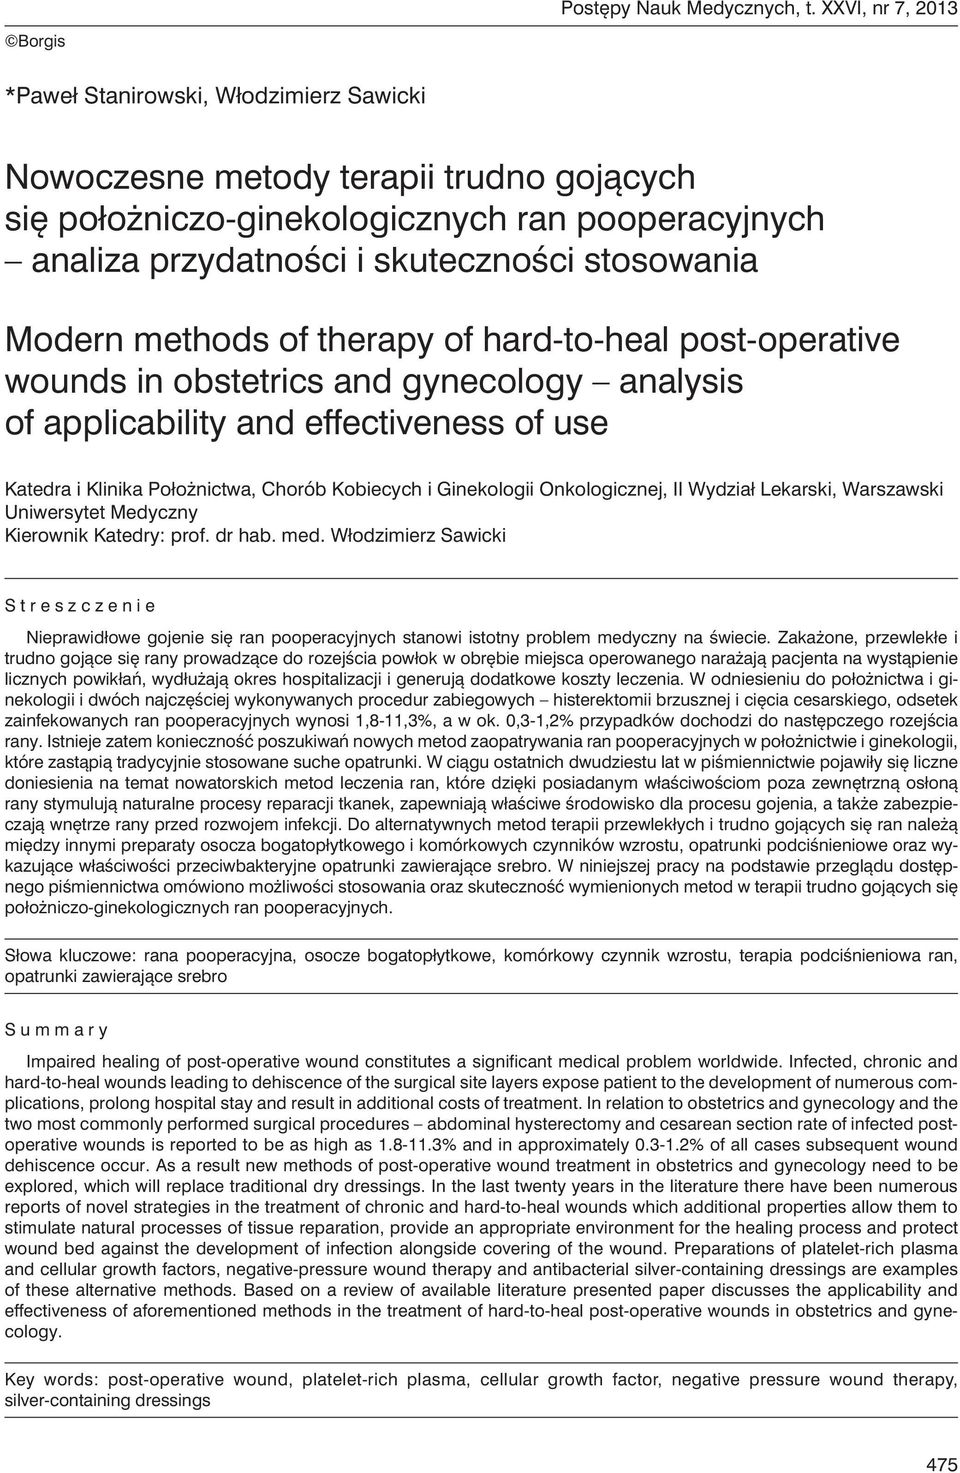 stosowania Modern methods of therapy of hard-to-heal post-operative wounds in obstetrics and gynecology analysis of applicability and effectiveness of use Katedra i Klinika Położnictwa, Chorób